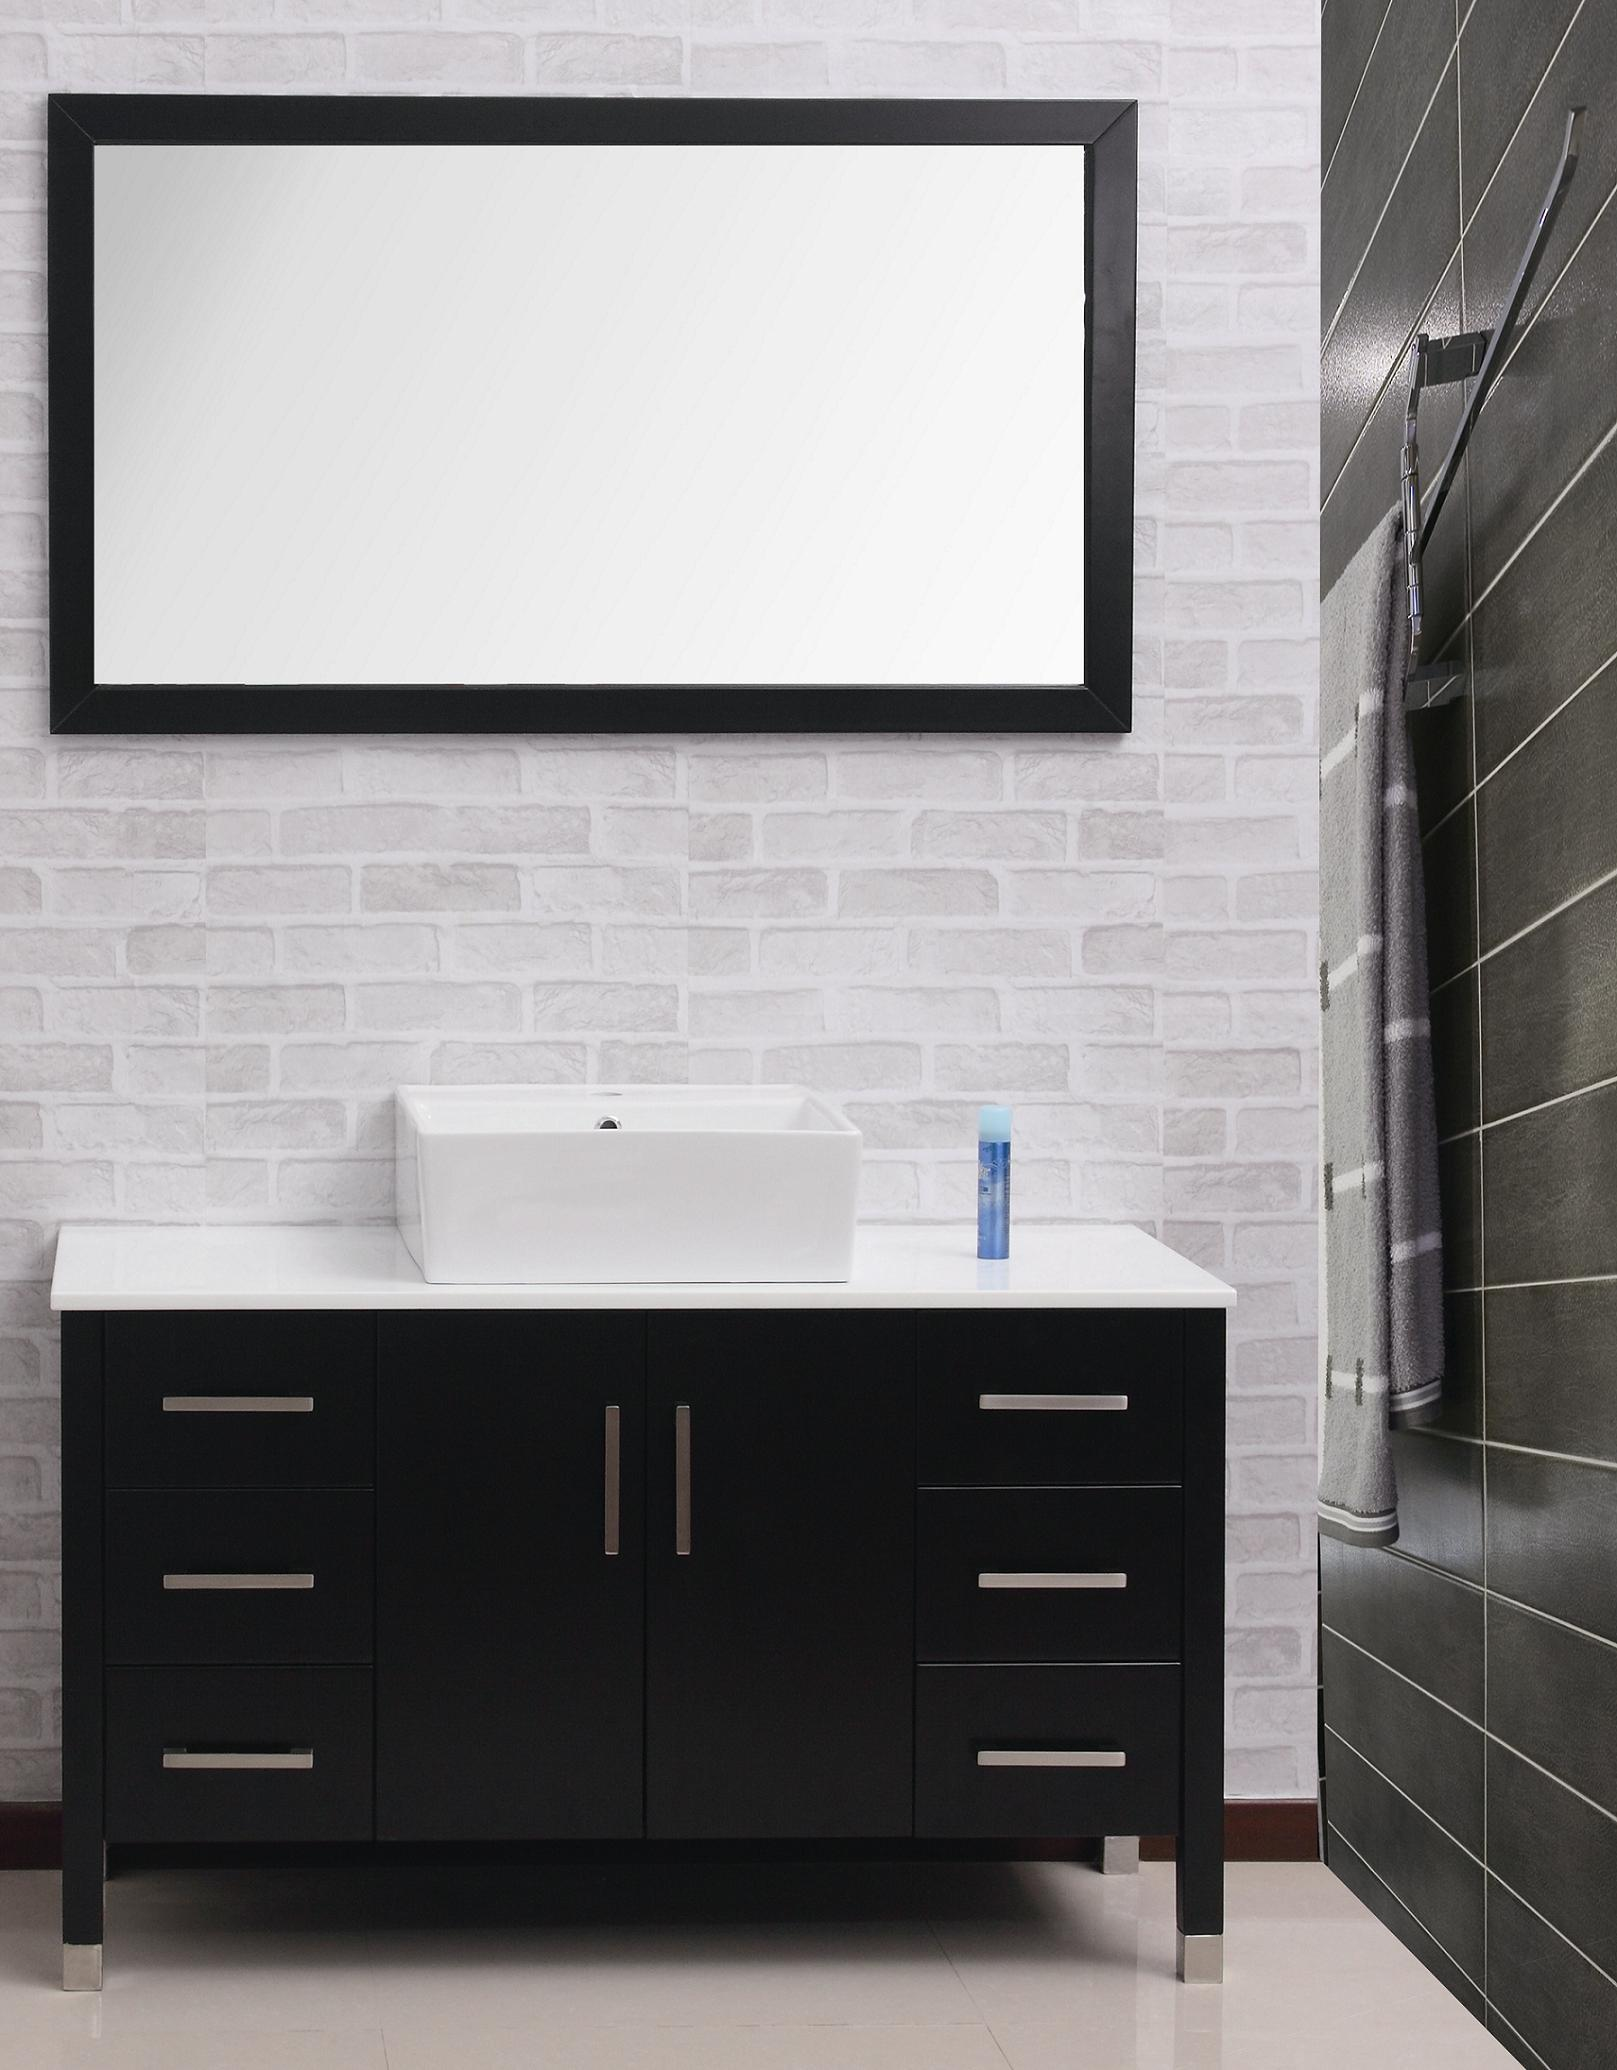 Classy Bathroom Using Black Vanity also White Top and Sink Too Mirror